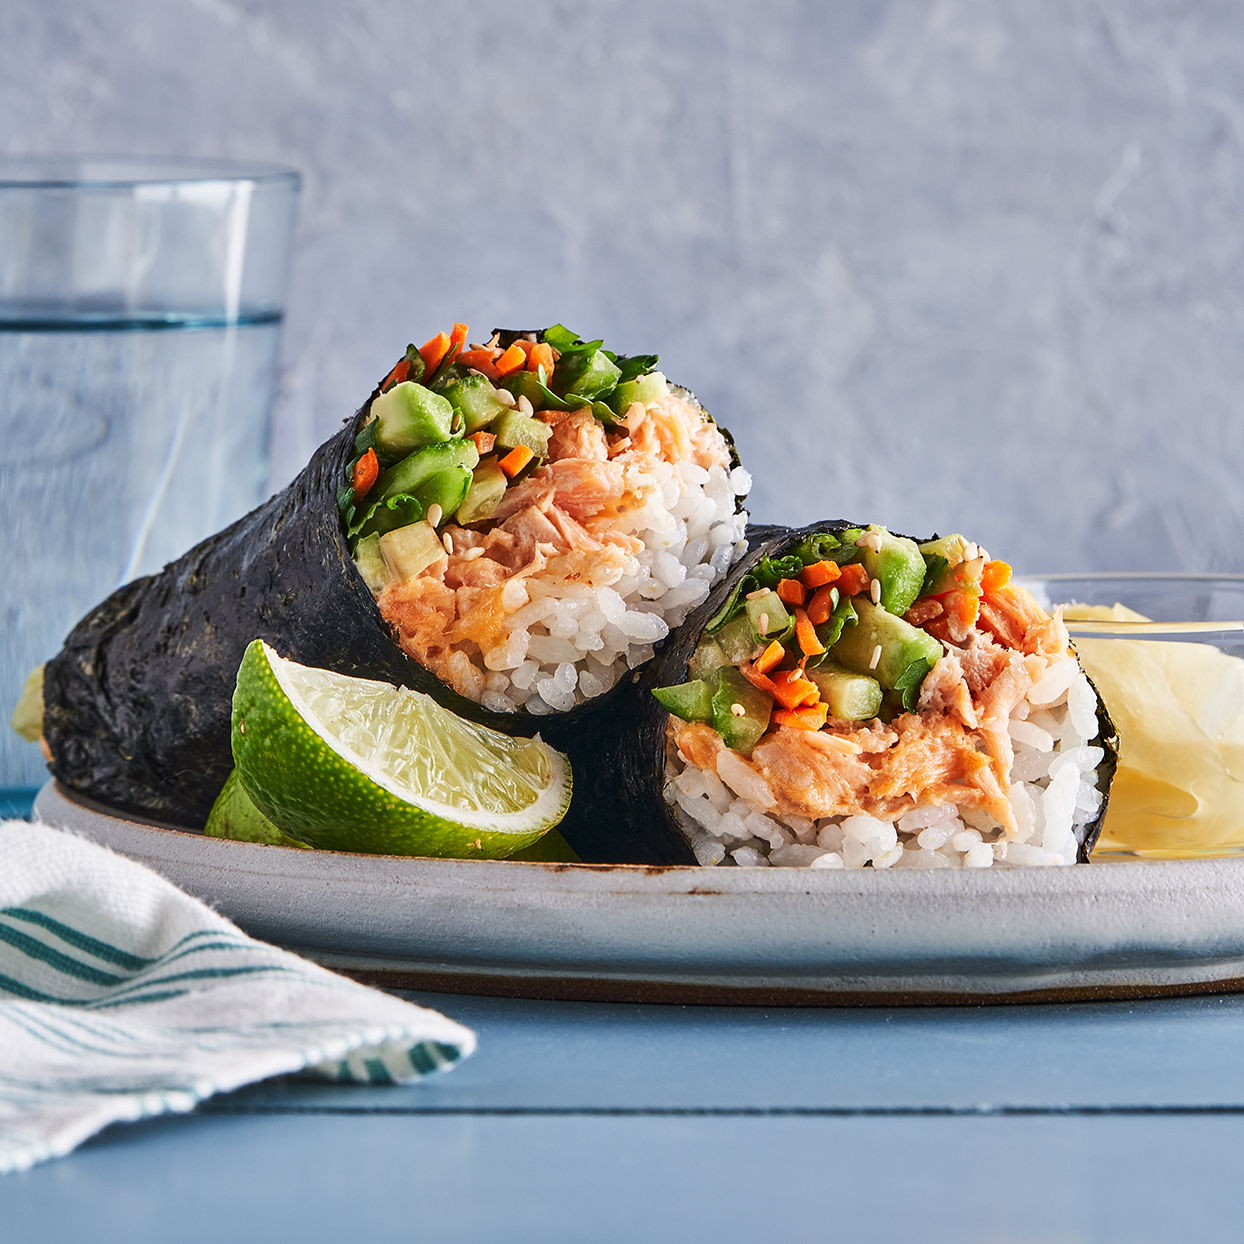 If rolling seems like too much work, serve these up as bowls. Chop up the nori to sprinkle on top. Source: EatingWell Magazine, September 2020